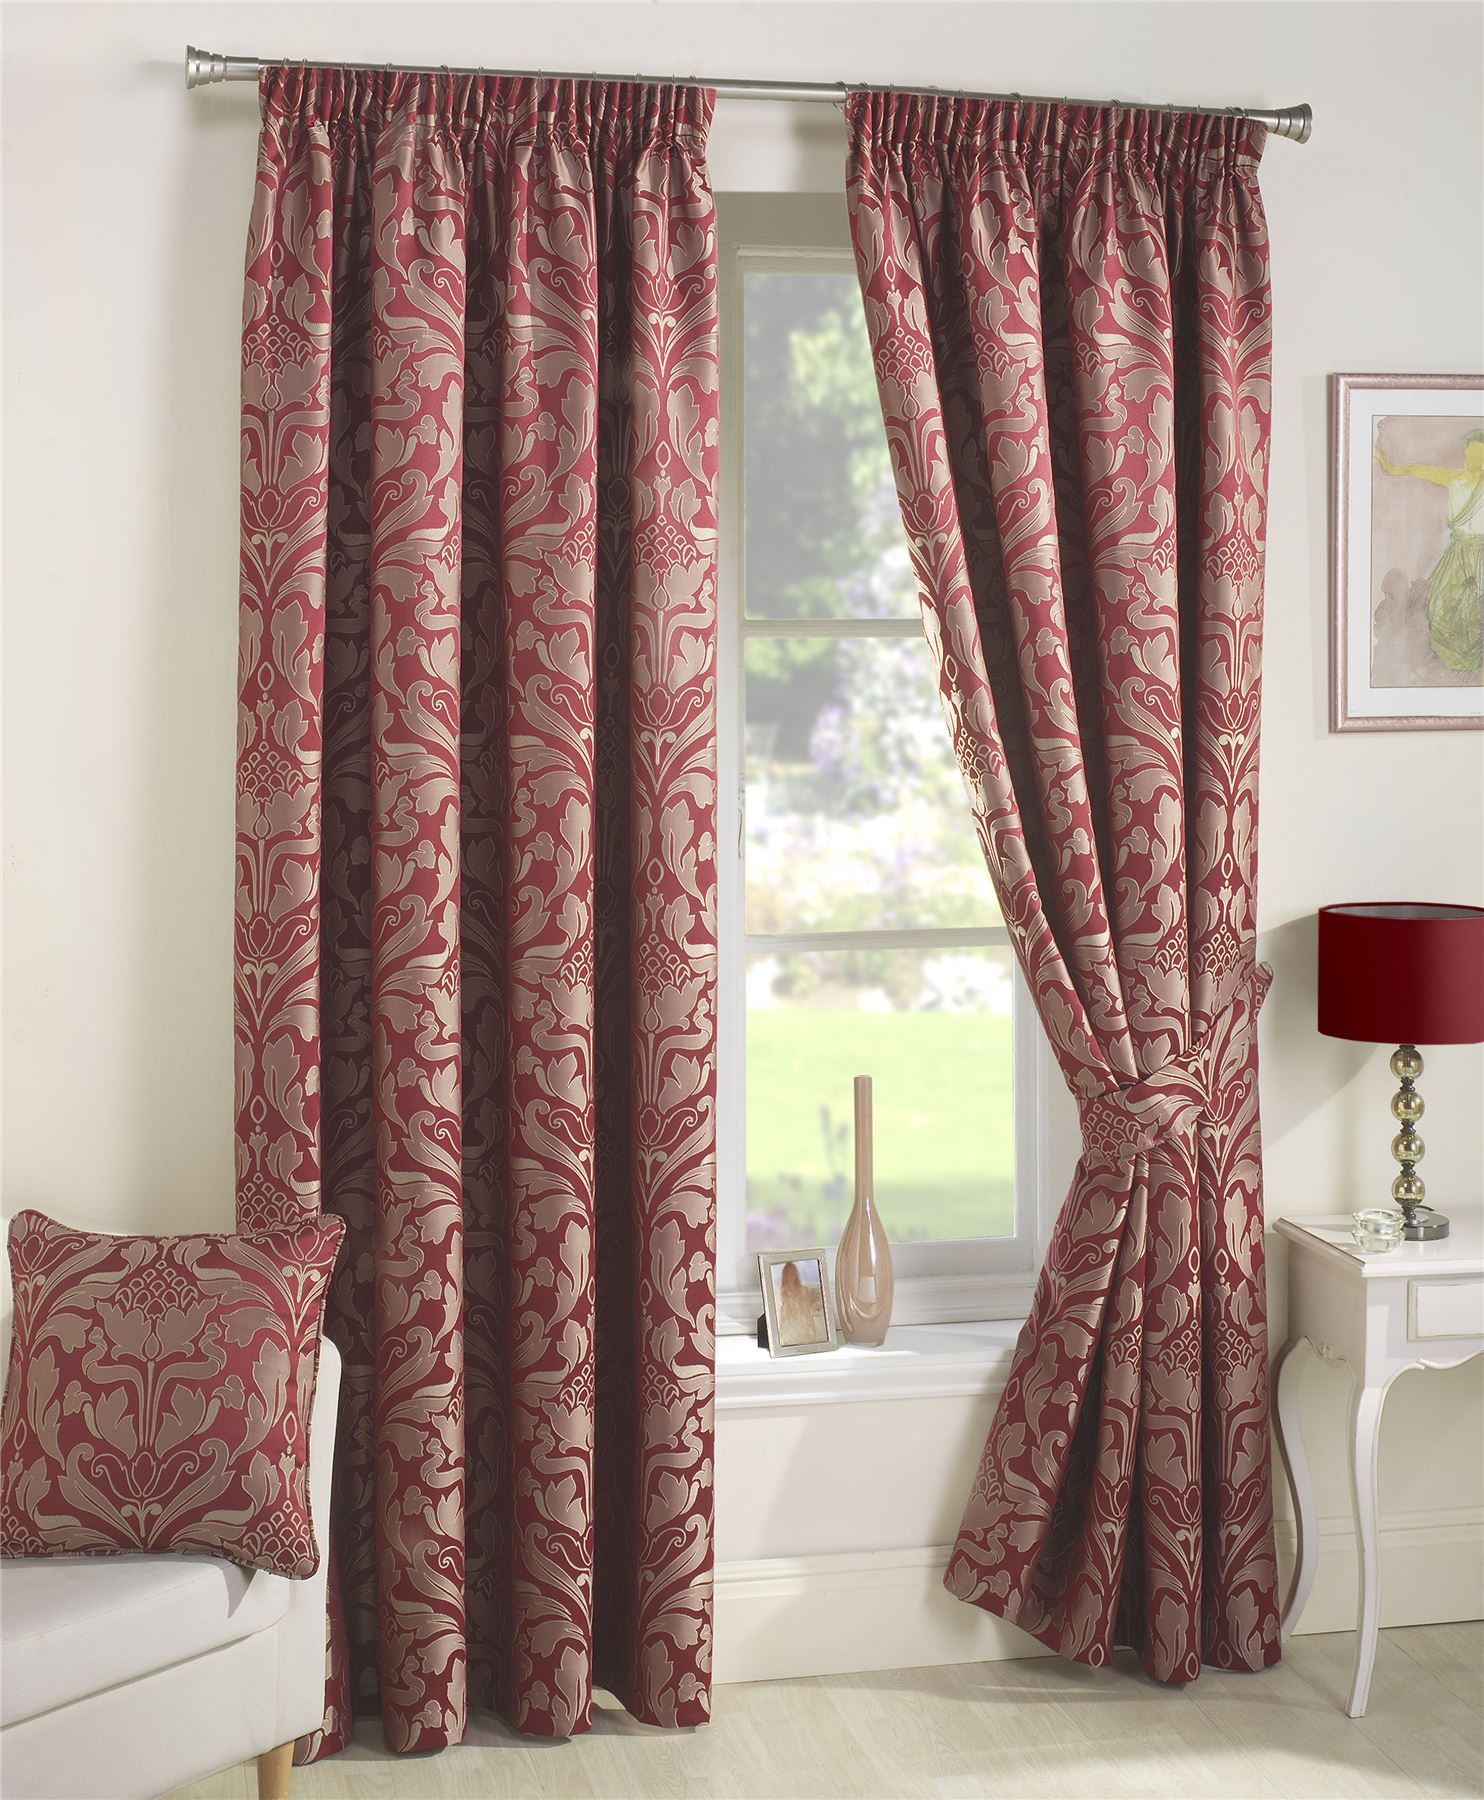 Curtina Crompton Damask Jacquard Pencil Pleat Lined Curtains Red ...